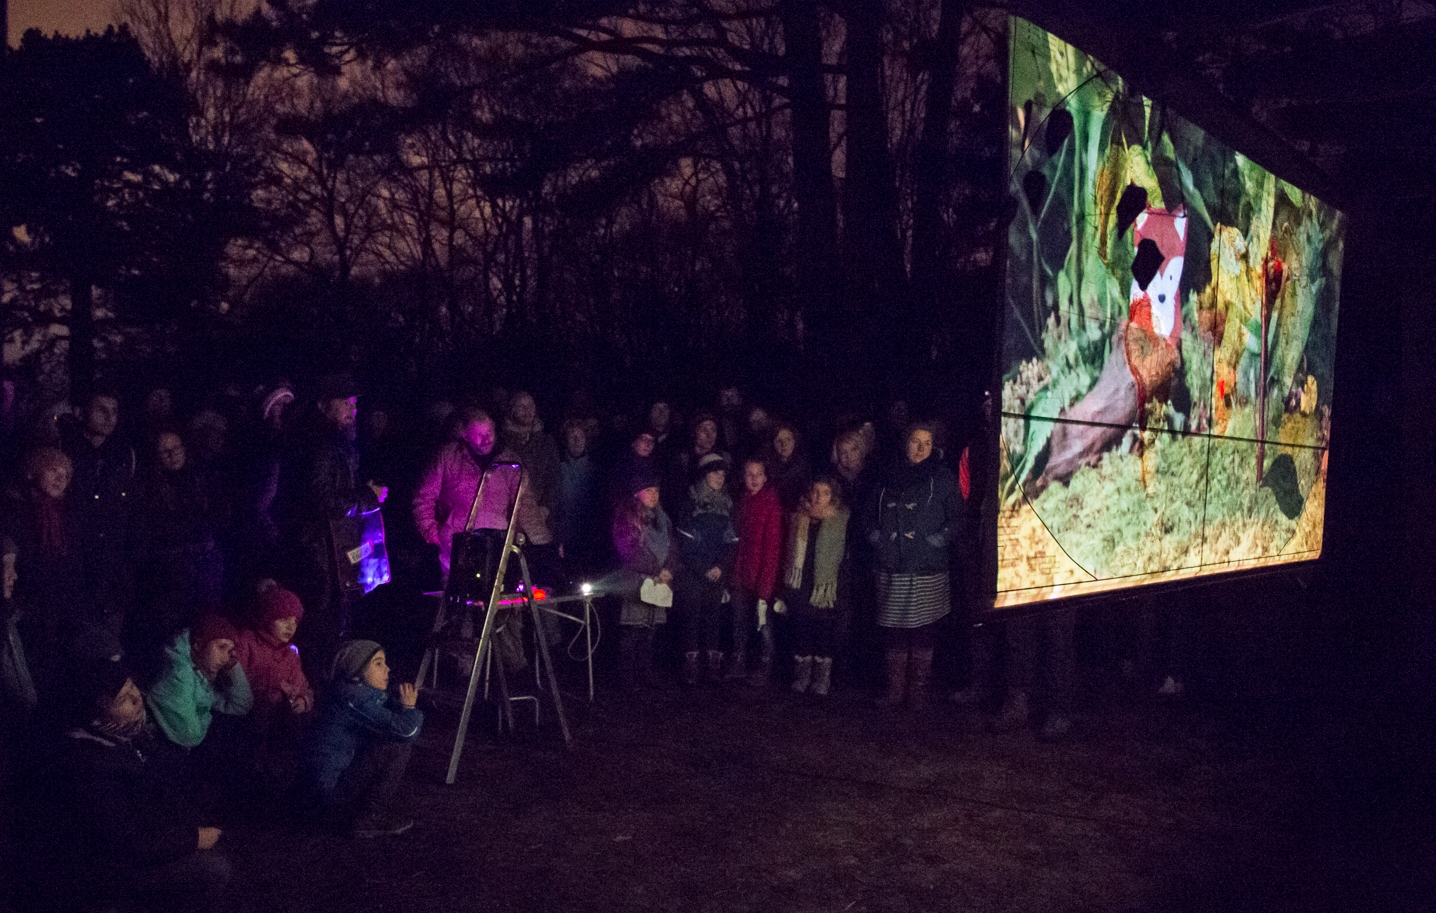 Photo taken during a screening in Erfurt. A group of adults and children watch a film on a screen in the forest.